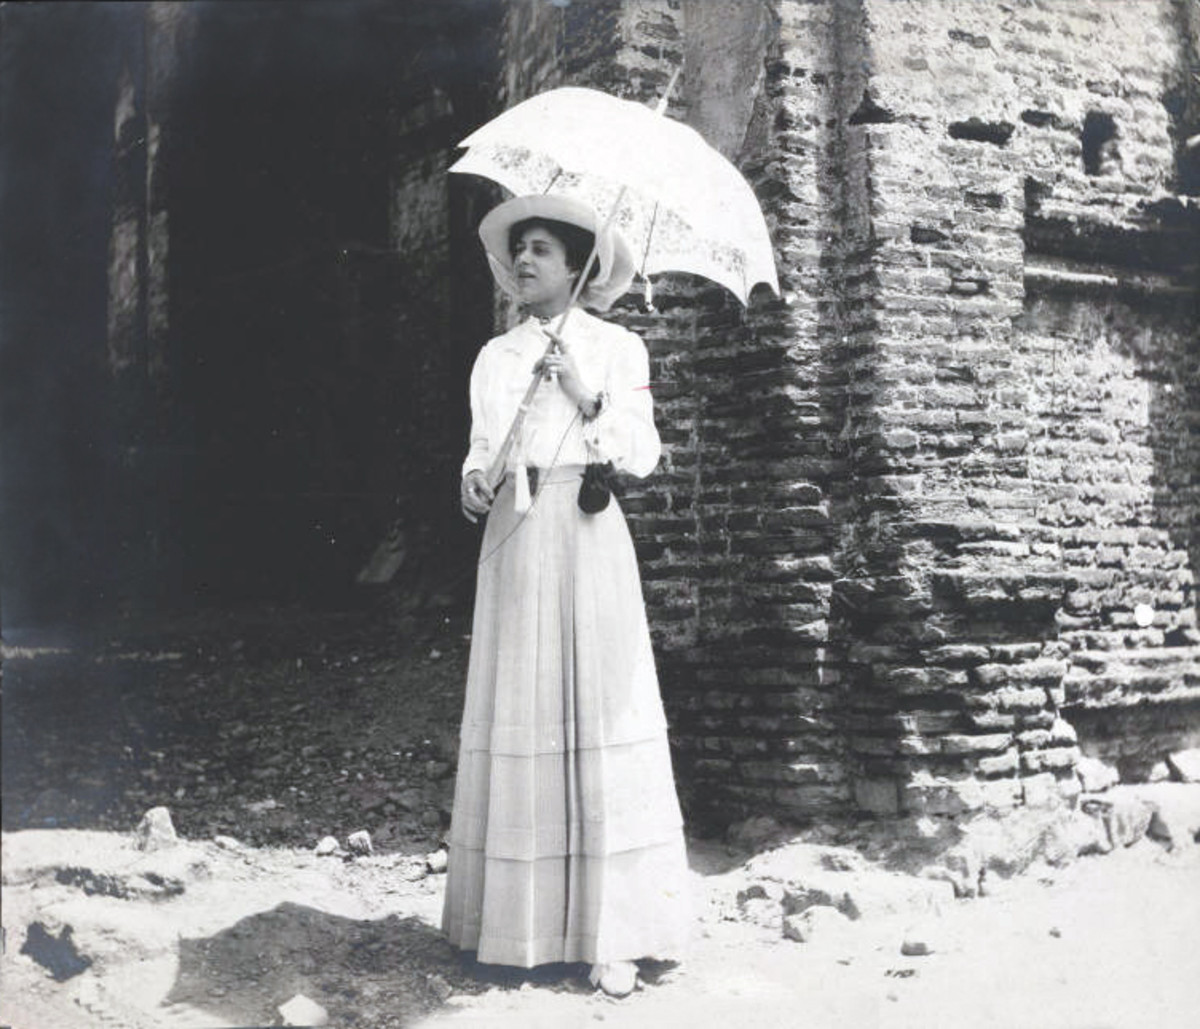 Grace Nail Johnson (Mrs. James Weldon Johnson), bridal photo in Panama 1910.